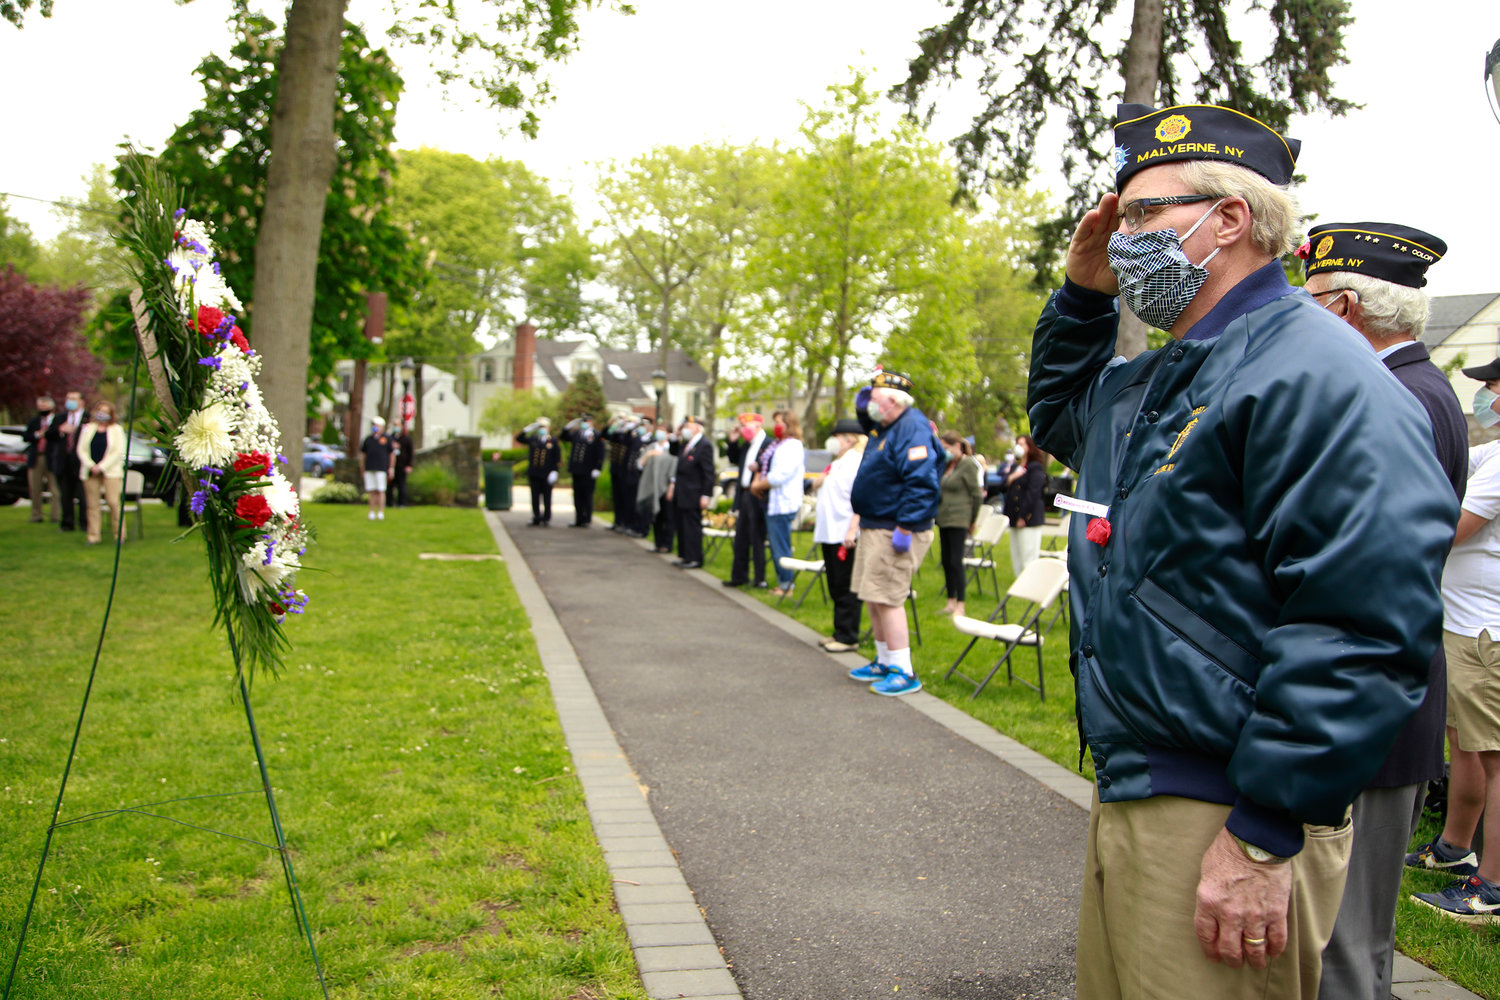 Veterans lined up at Westwood Park in Malverne as part of the village's annual Memorial Day ceremony.